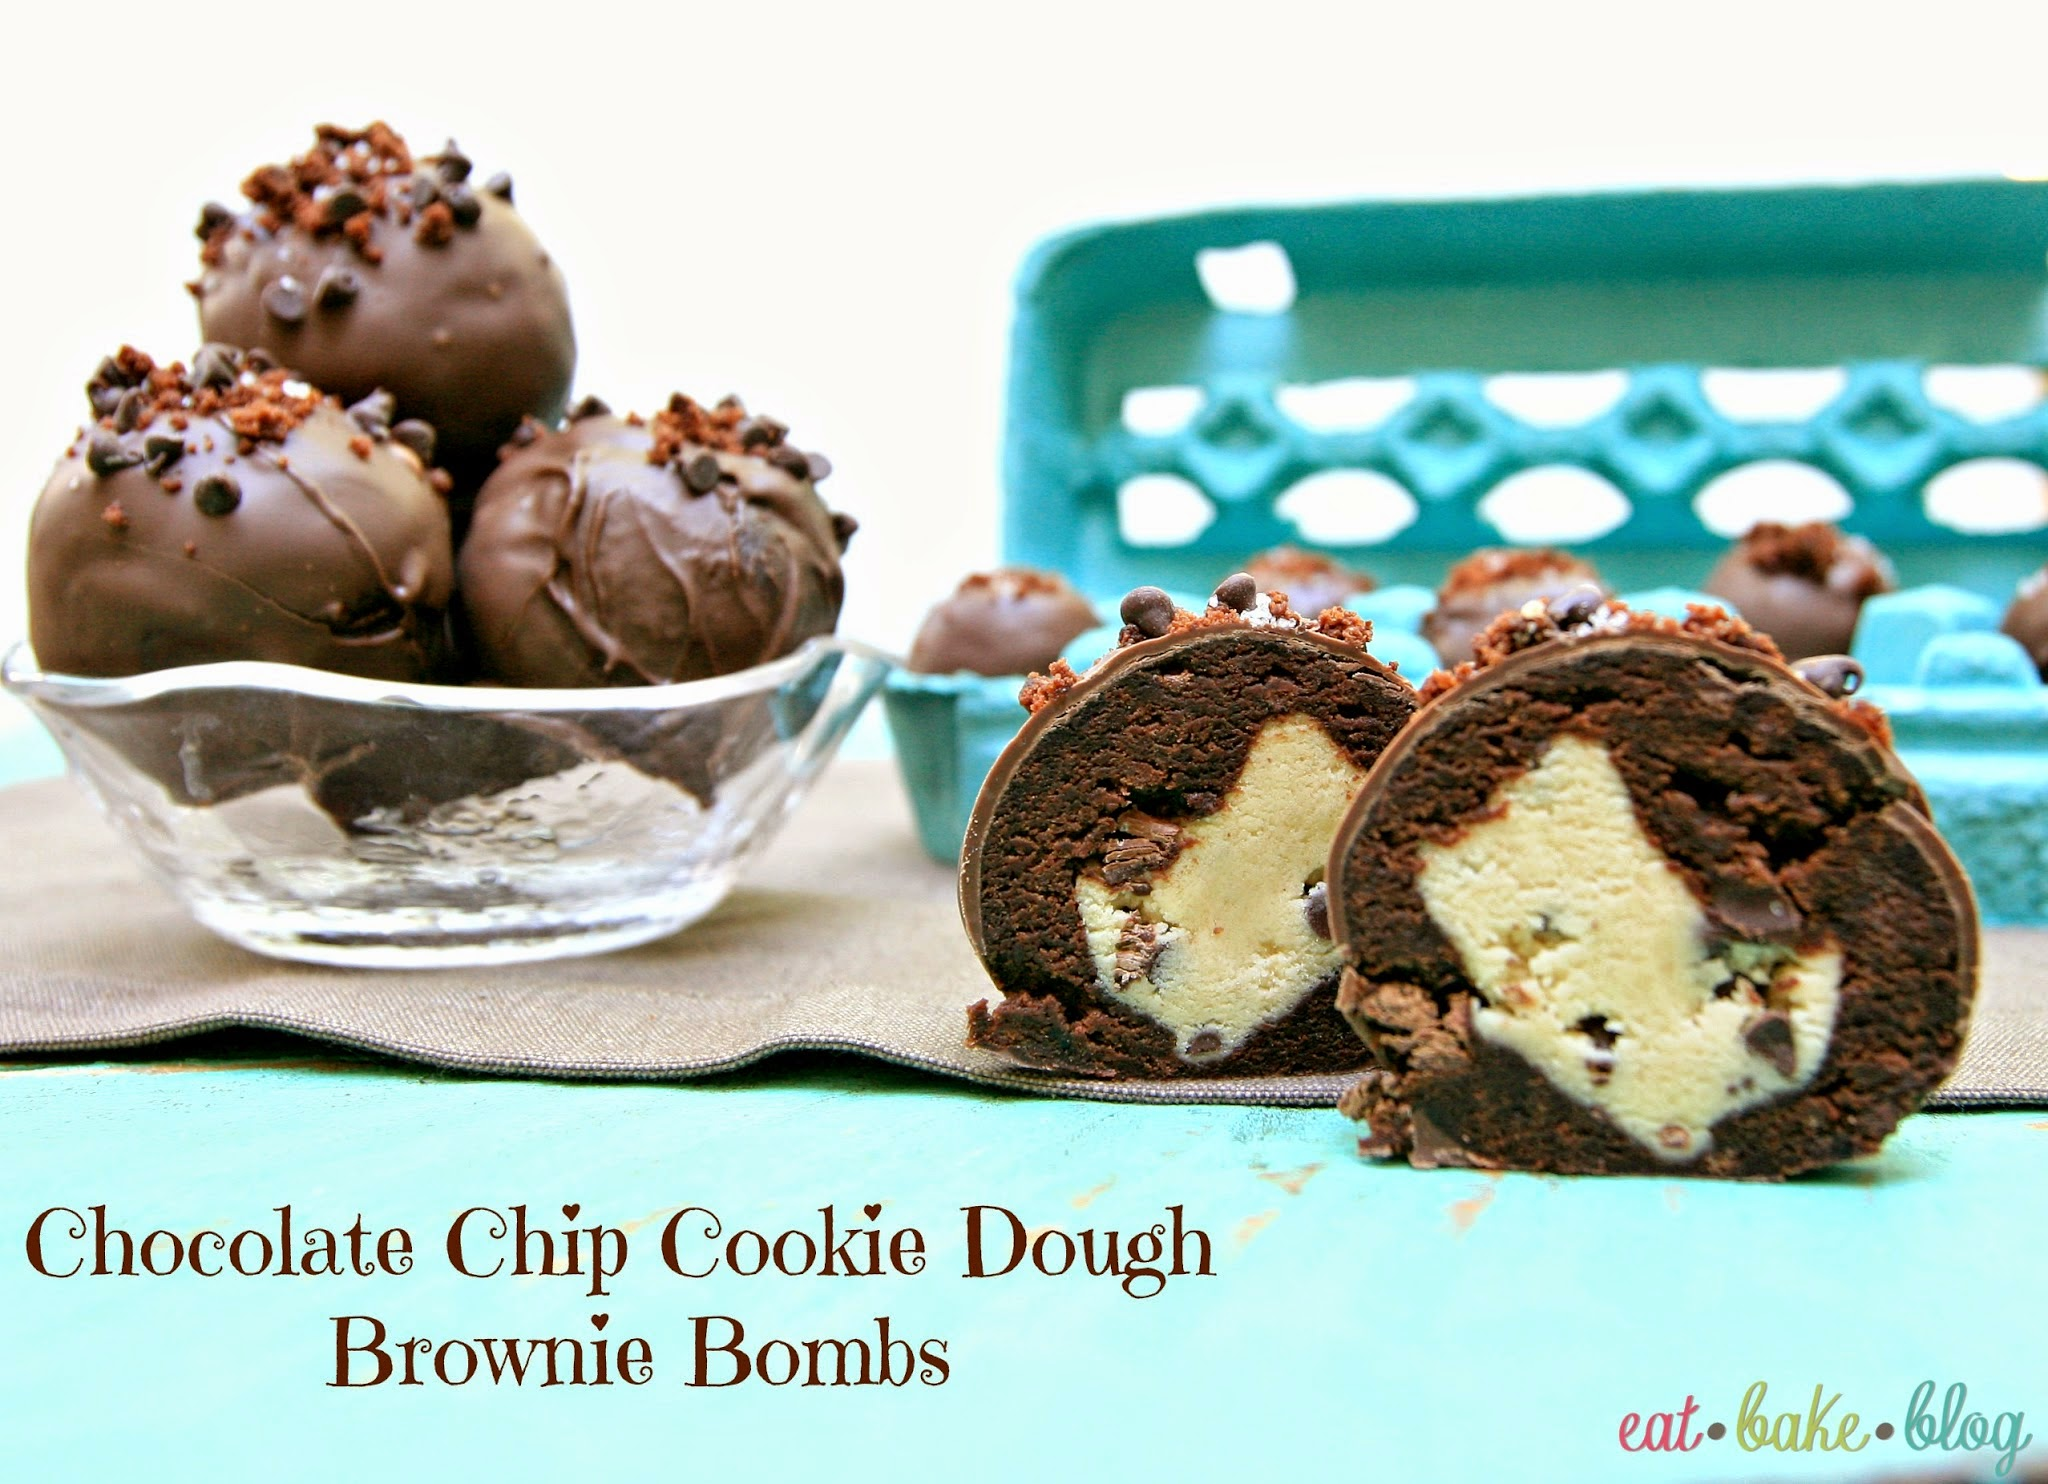 chocolate chip cookie dough recipe best bon bon recipe easy chocolate chip cookie dough recipe safe to eat cookie dough raw cookie dough recipe